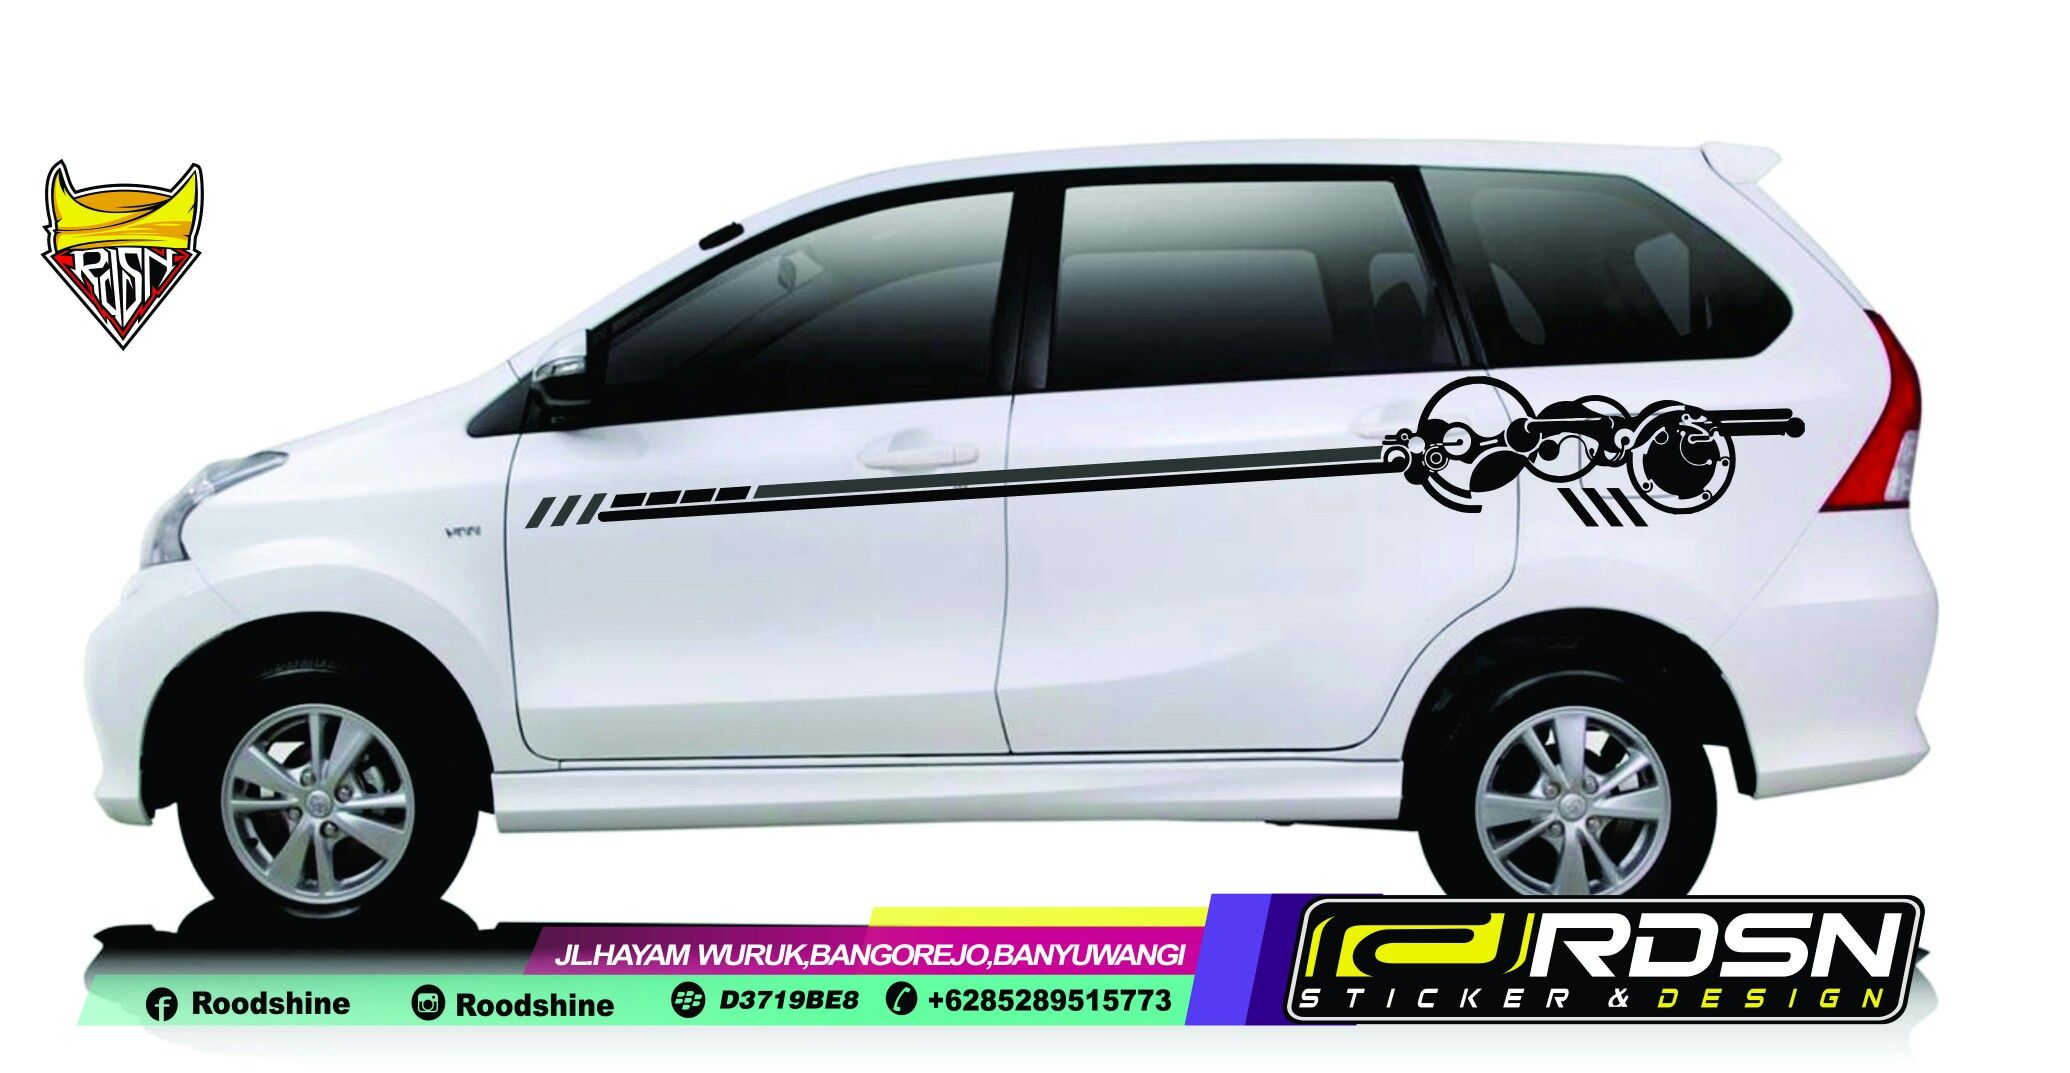 Avanzacuttingsticker Cuttingsticker Avanza Veloz Roodshine